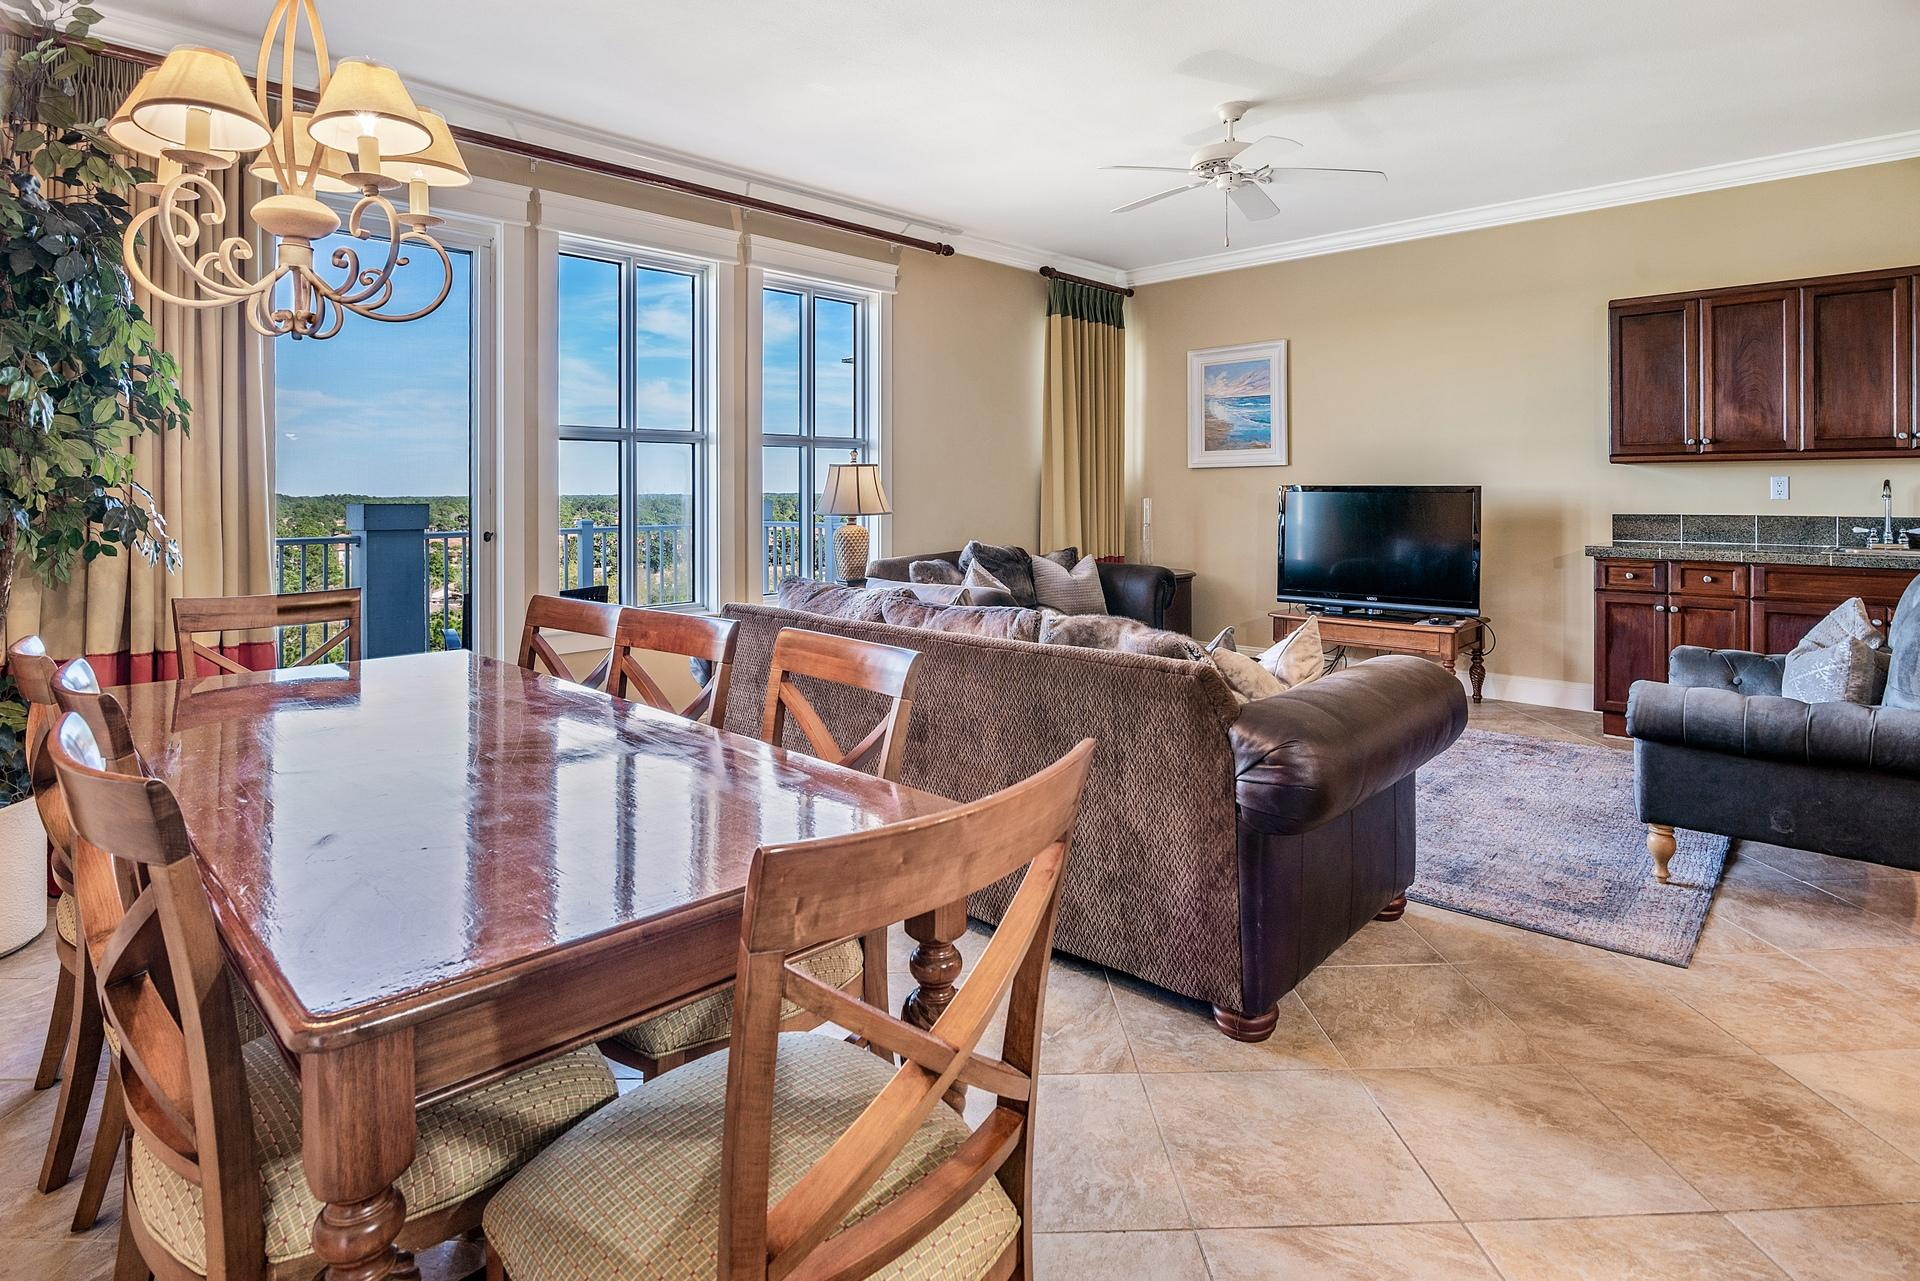 A 3 Bedroom 3 Bedroom Grand Sandestin Condominium